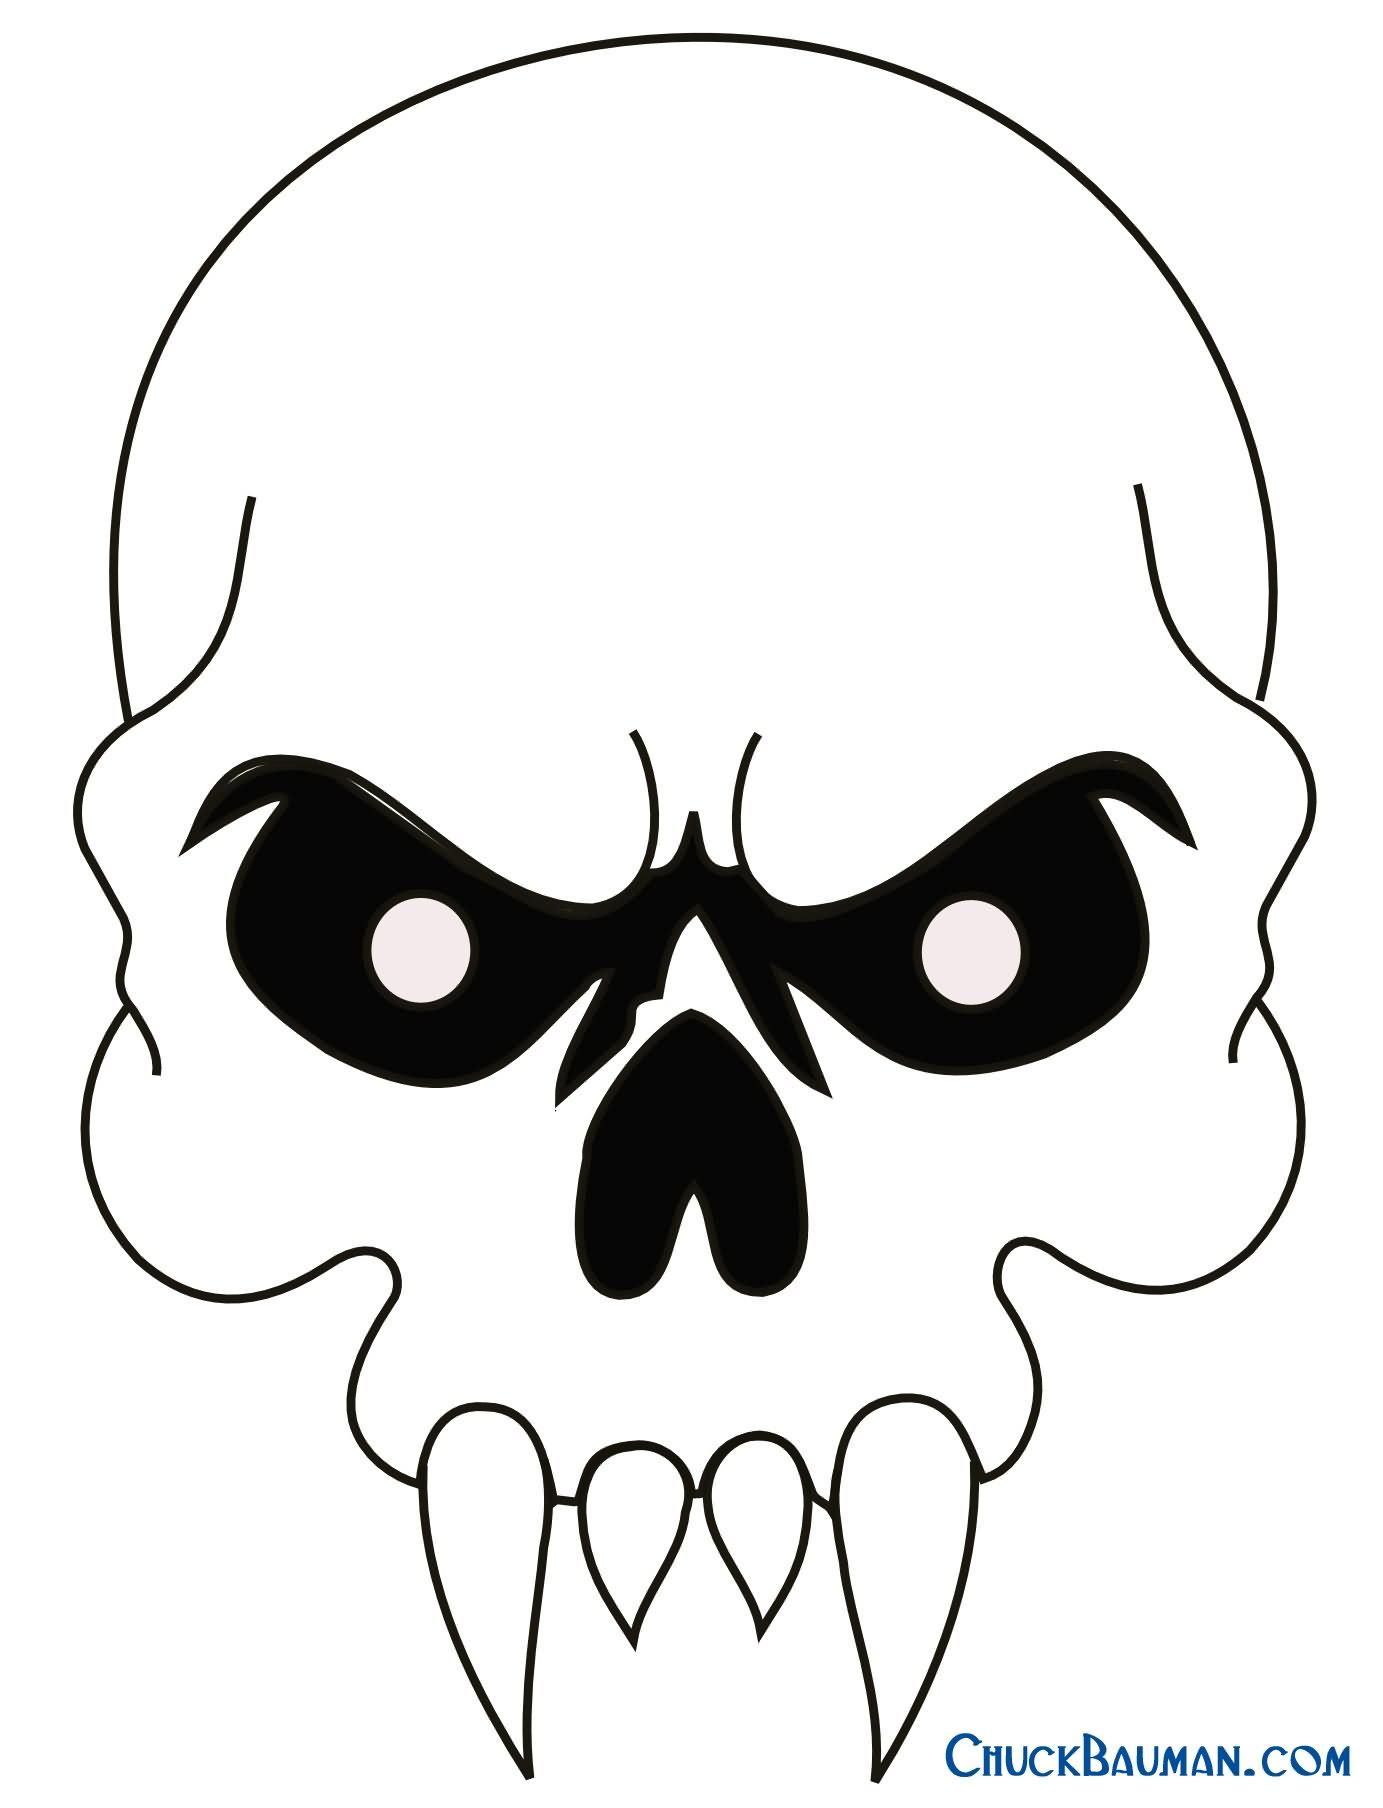 Free skull tattoo designs to print - Simple Black Outline Vampire Skull Tattoo Stencil Print Tattoosskull Tattoostattoo Stencilsfree